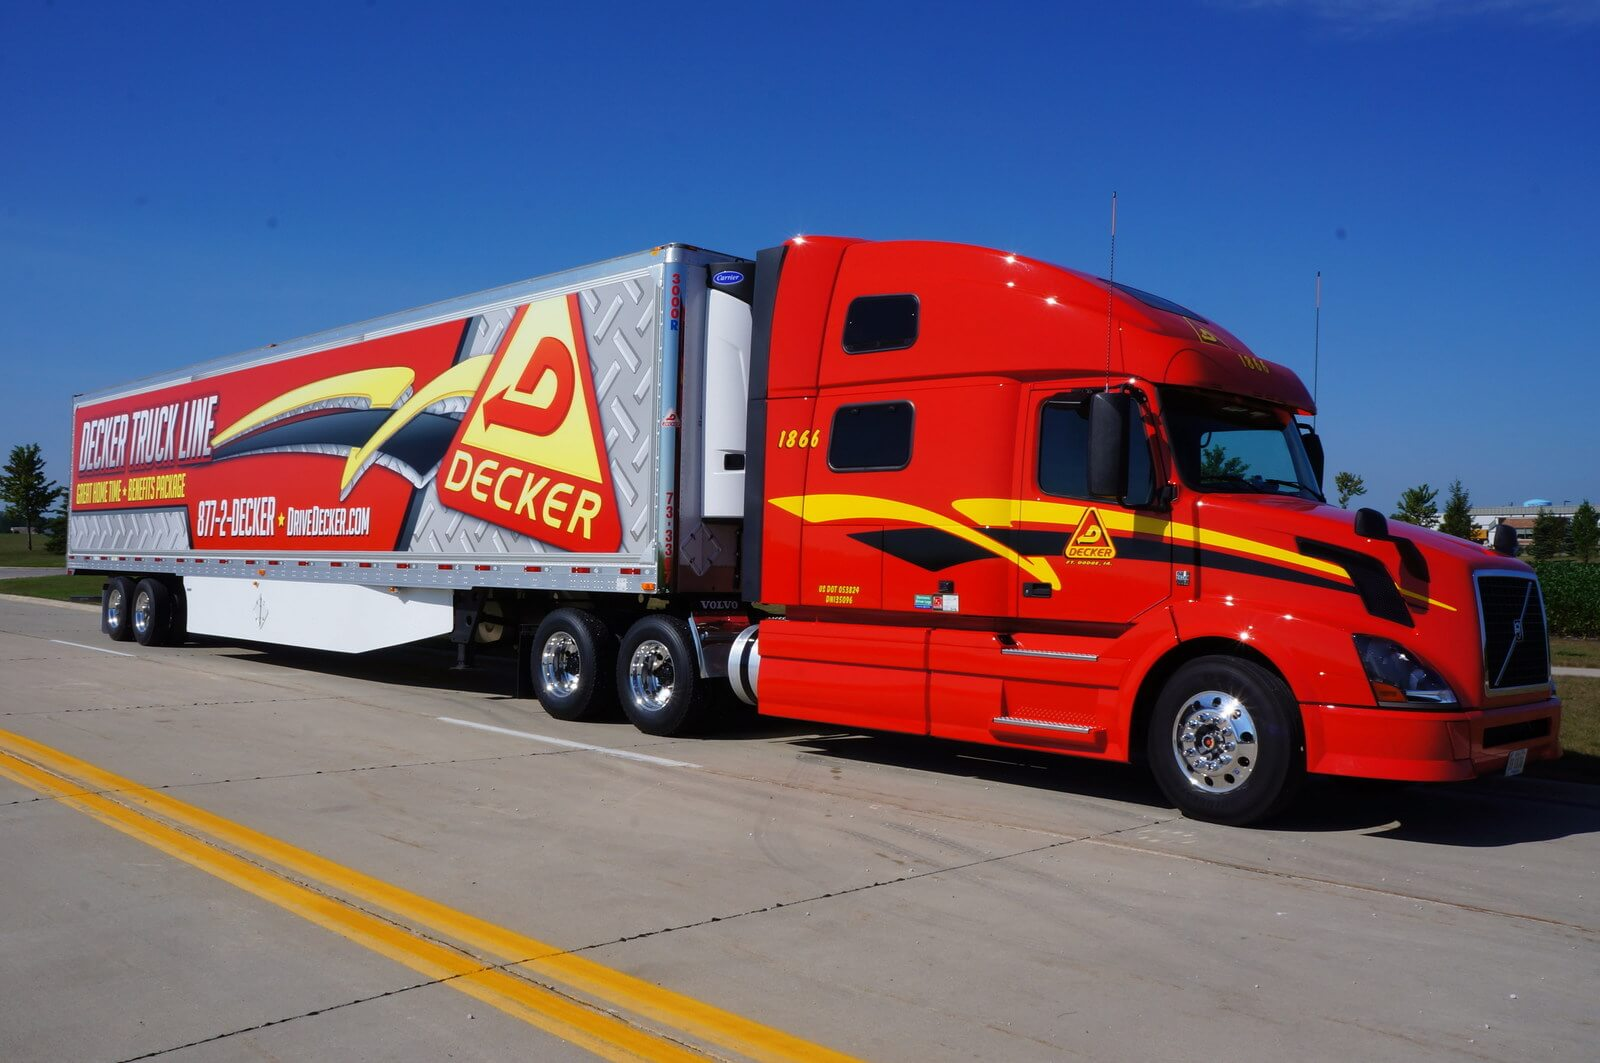 Decker Truck Line adopts SmartDrive video-based safety program